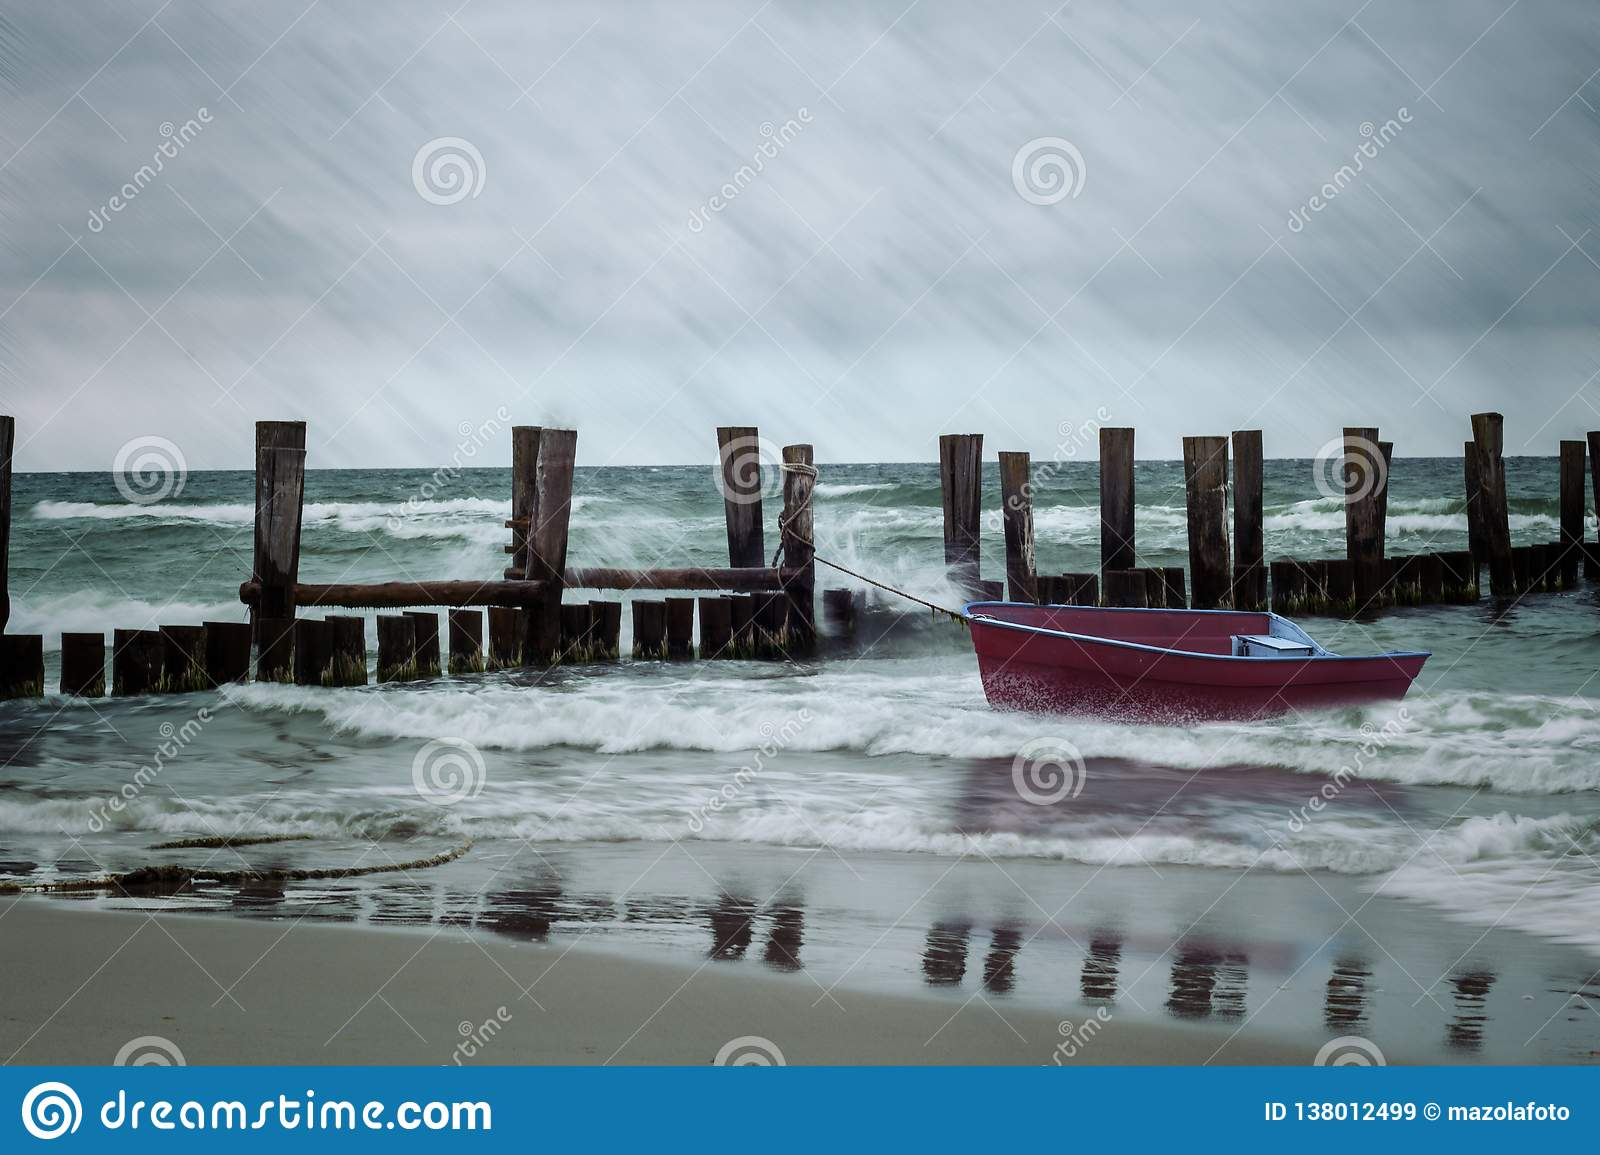 Storm on the sea with a little red boat